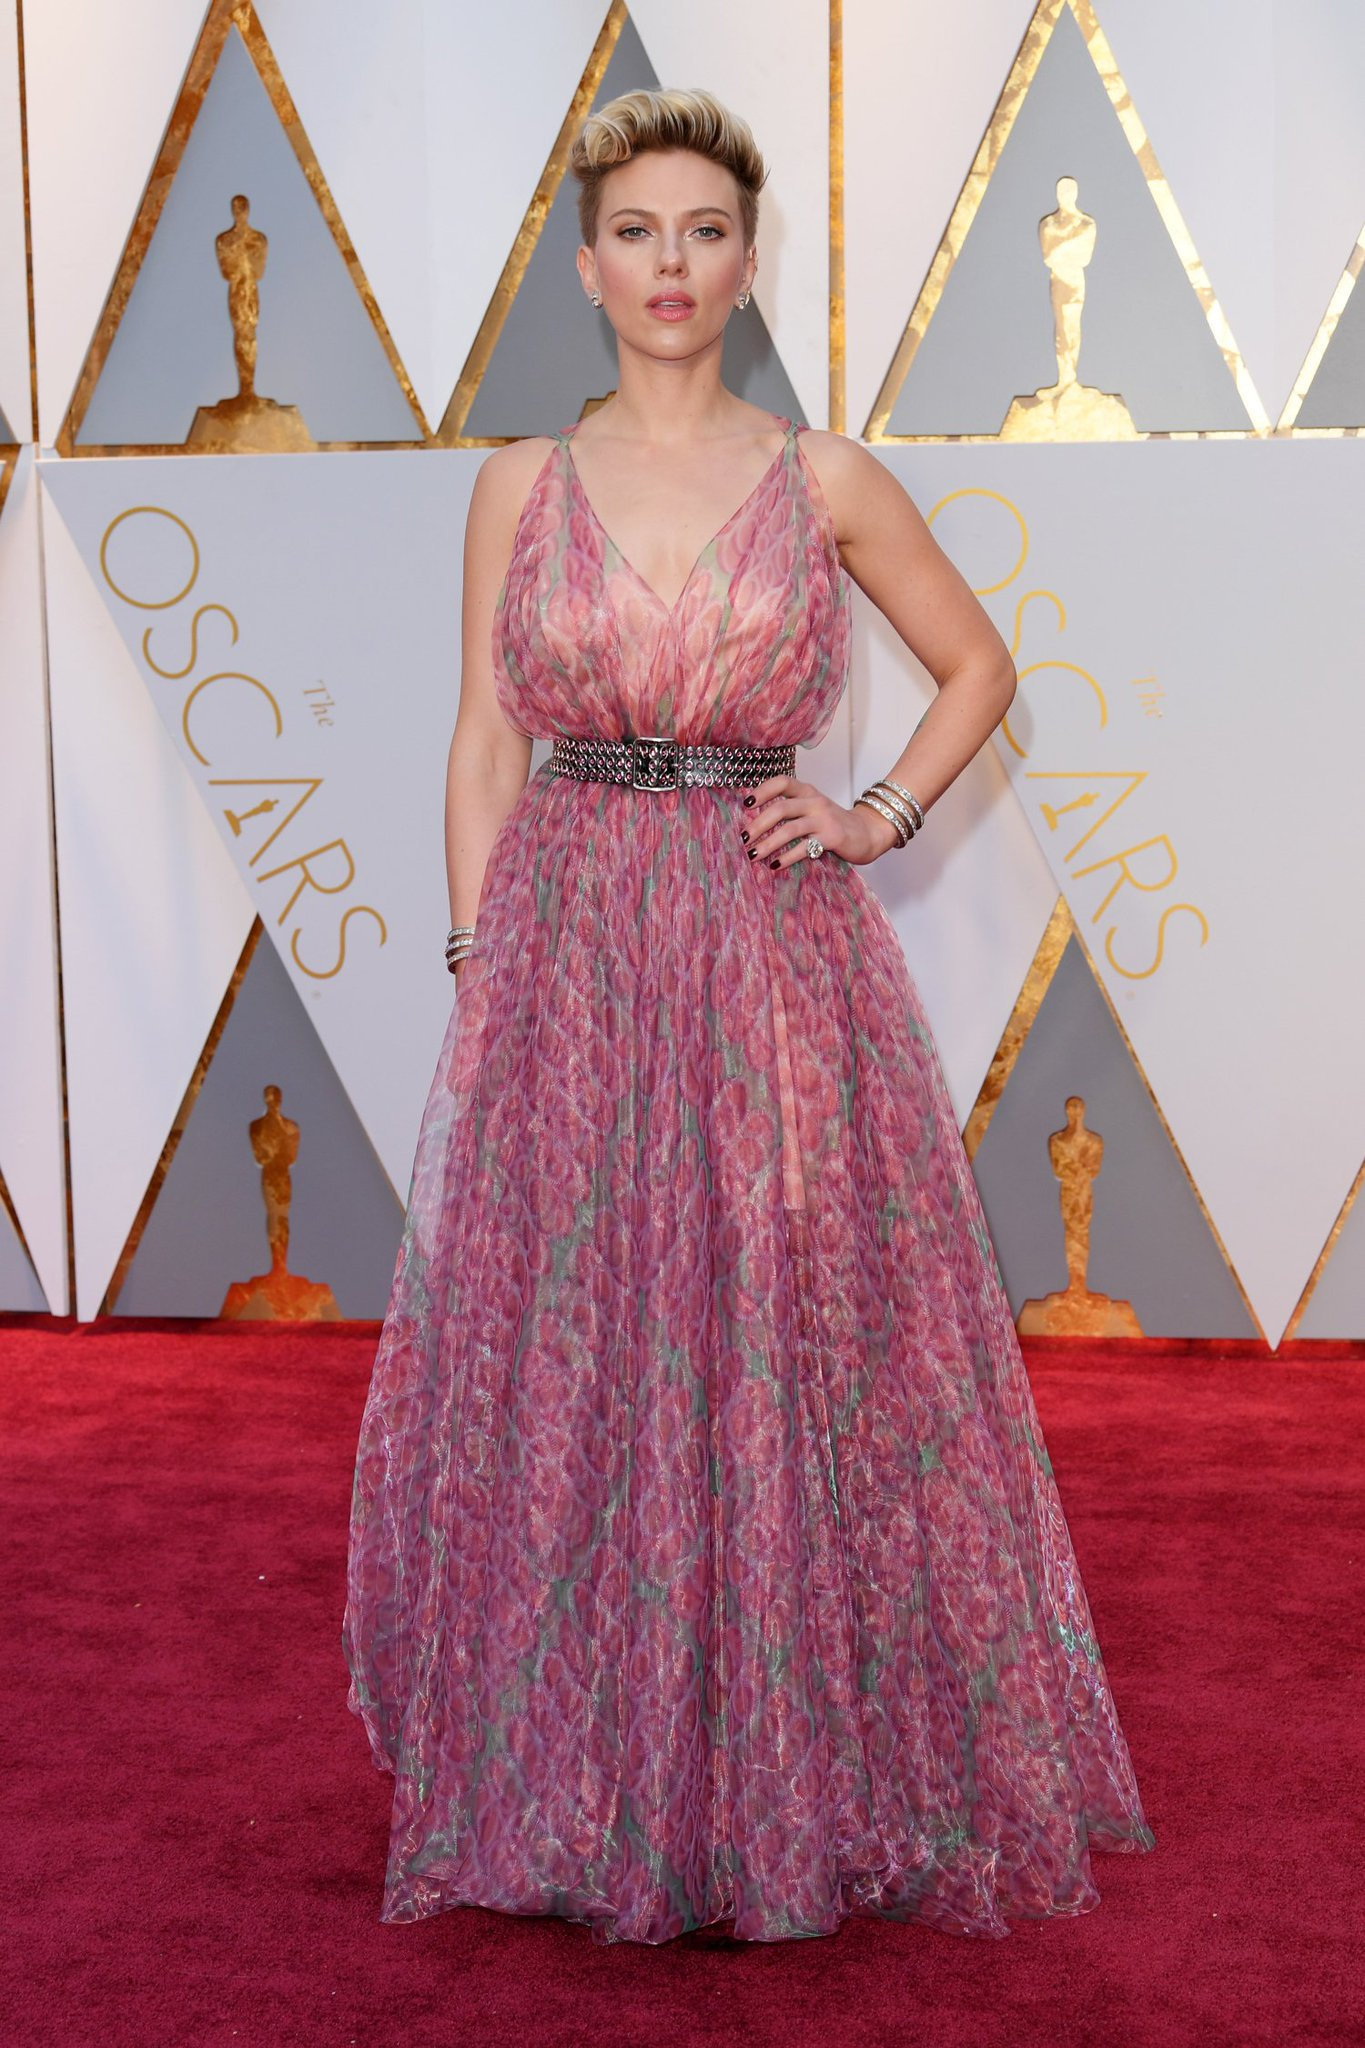 Scarlett Johansson was pretty in pink in Alaia at the #Oscars https://t.co/CE9NWs6paT https://t.co/c68O6lifhN